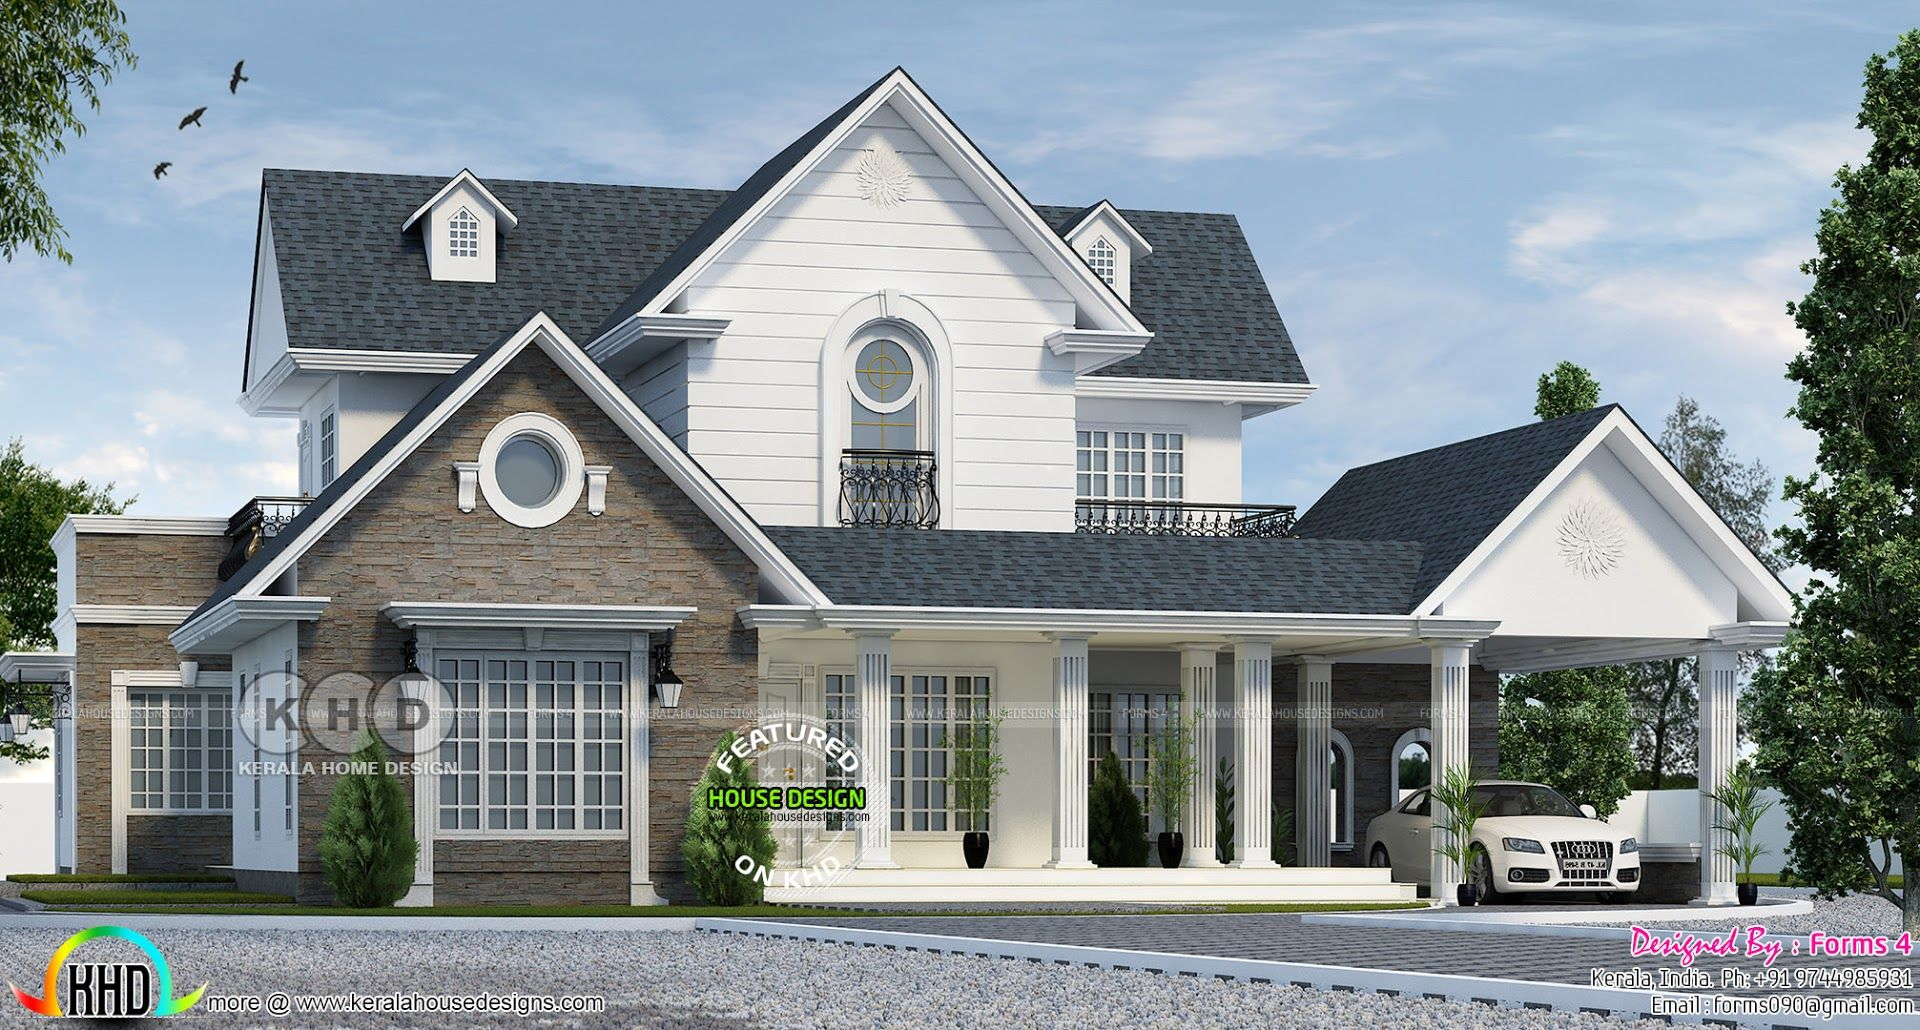 European Colonial Style House In 2020 Colonial Style Homes Colonial House Plans Kerala House Design